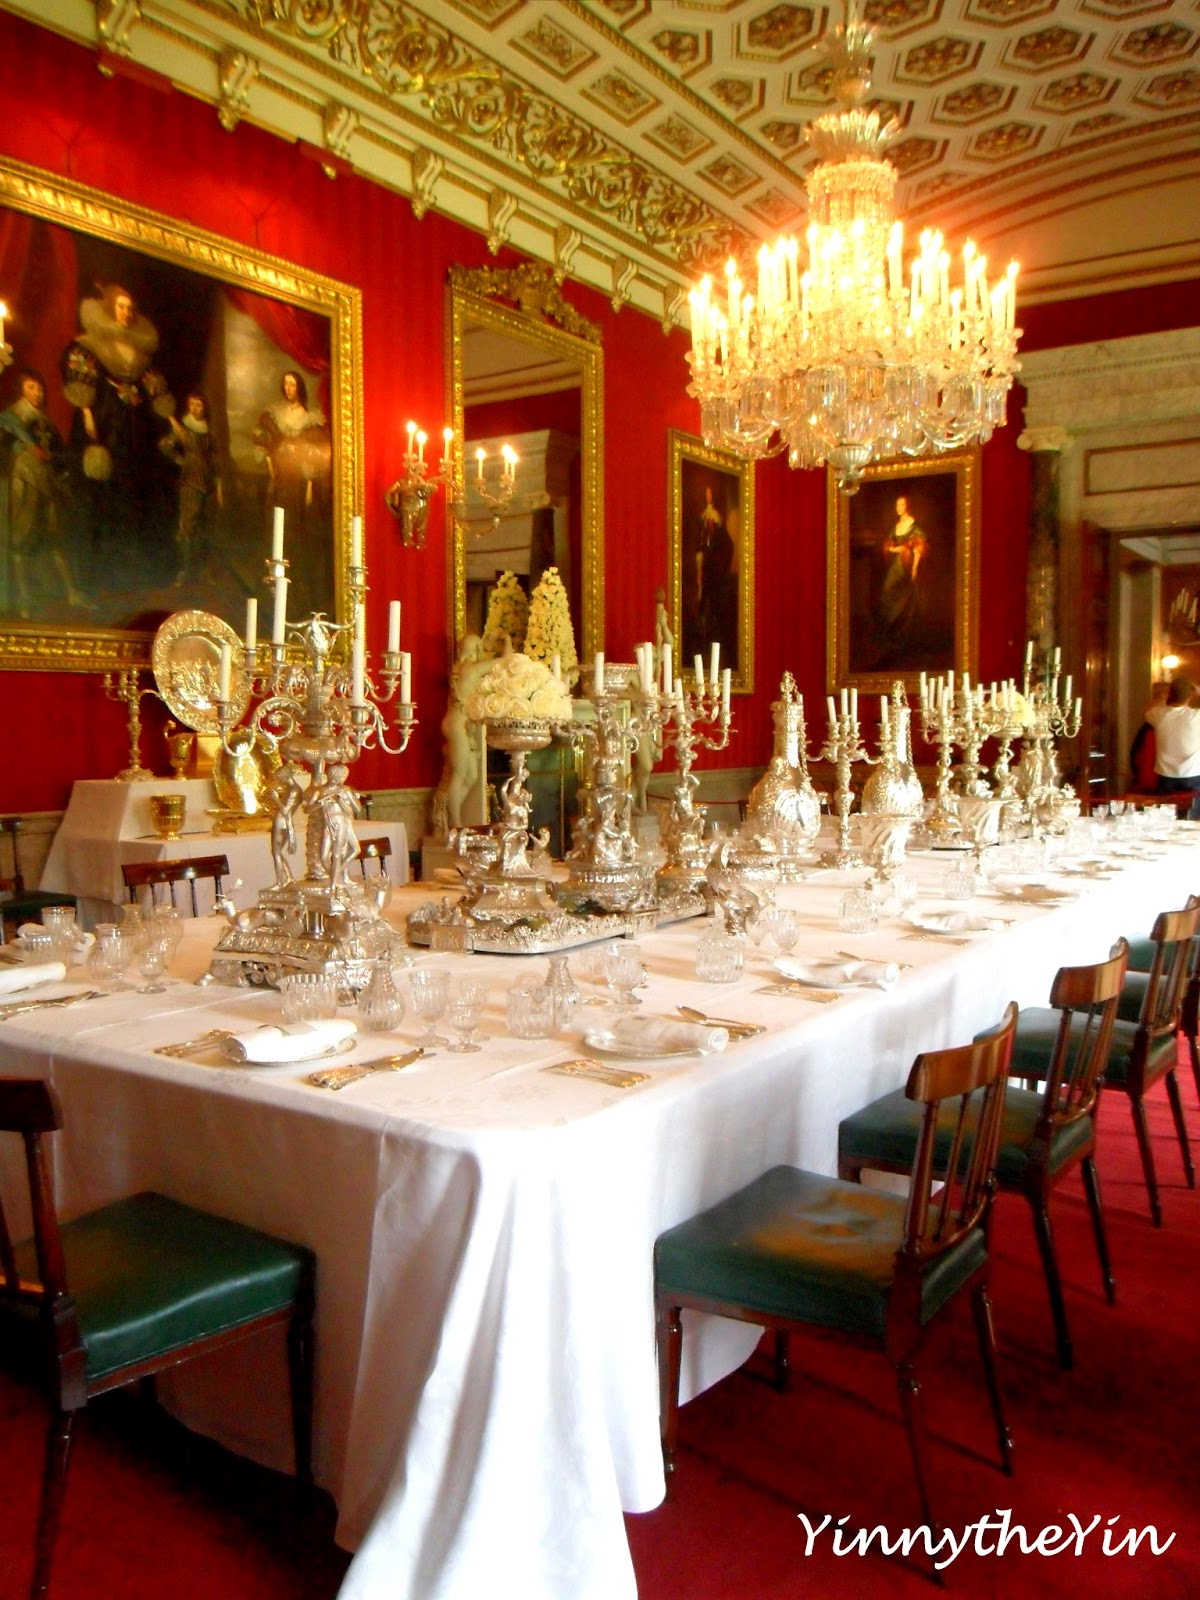 Chatsworth House Room: Yinnytheyin: Chatsworth House